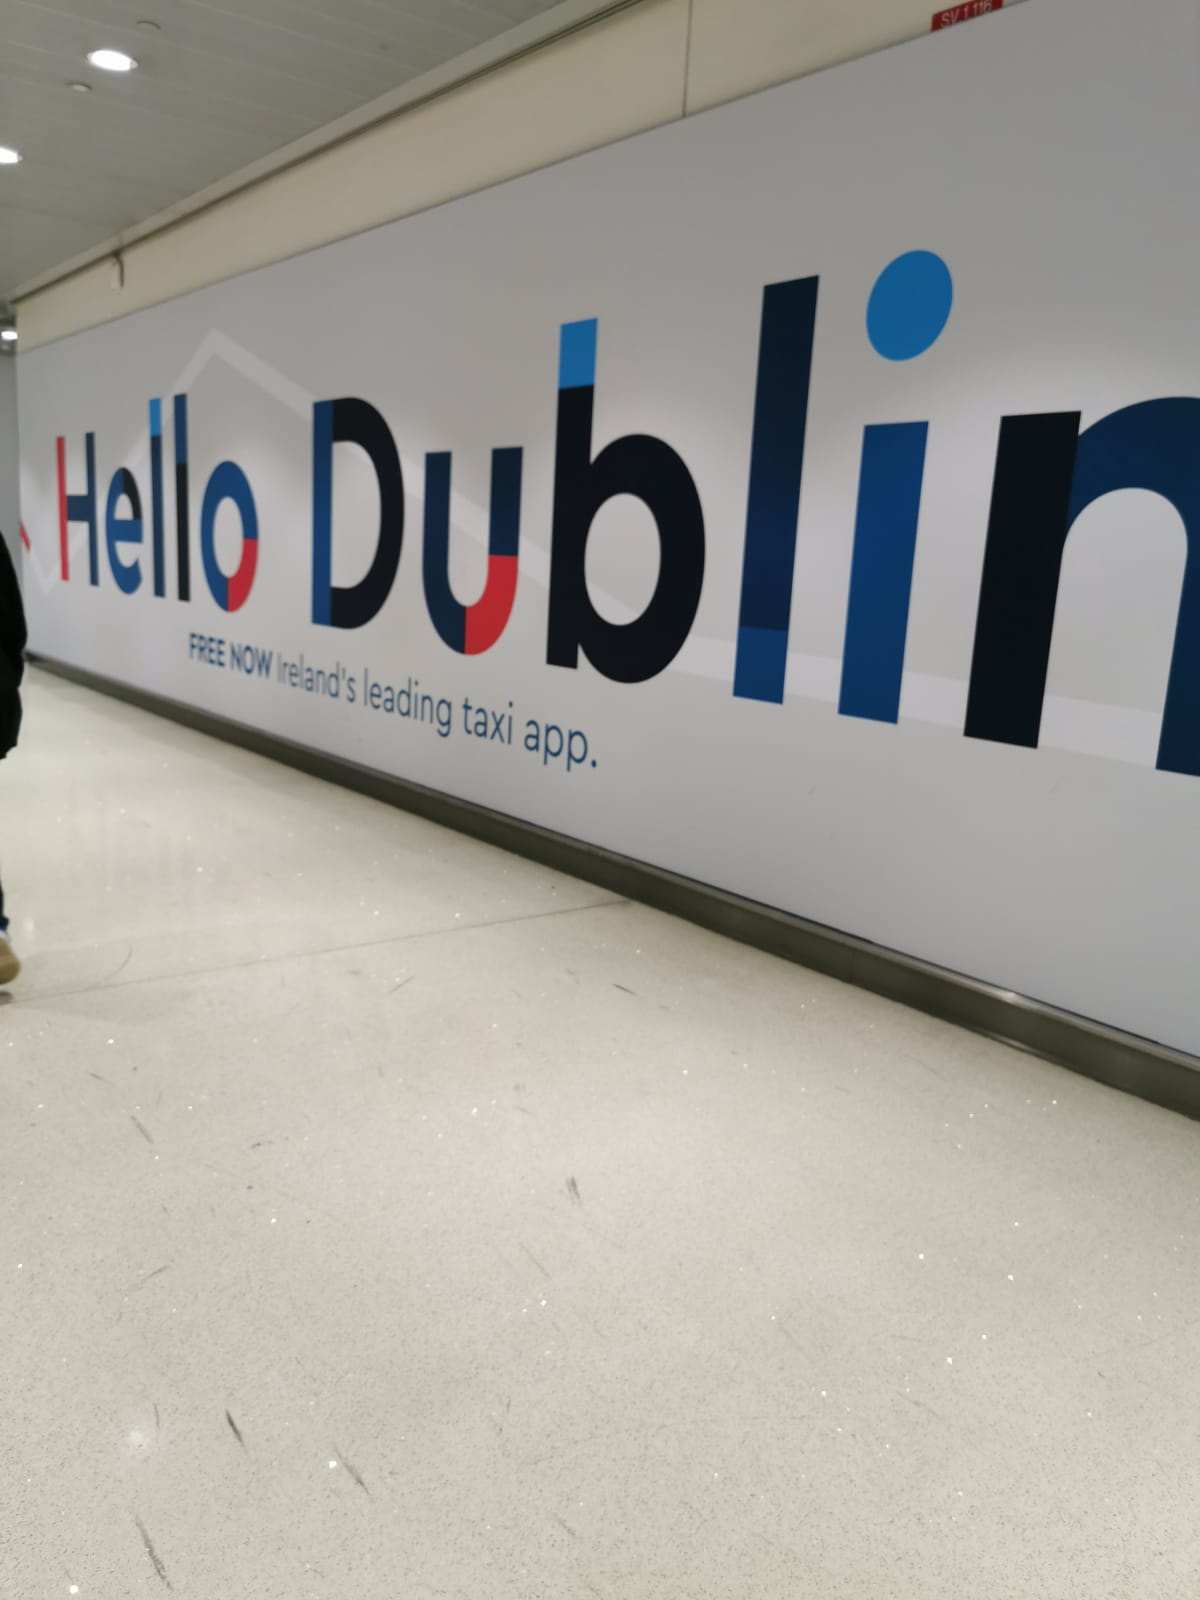 Fuxenexkursion nach Dublin